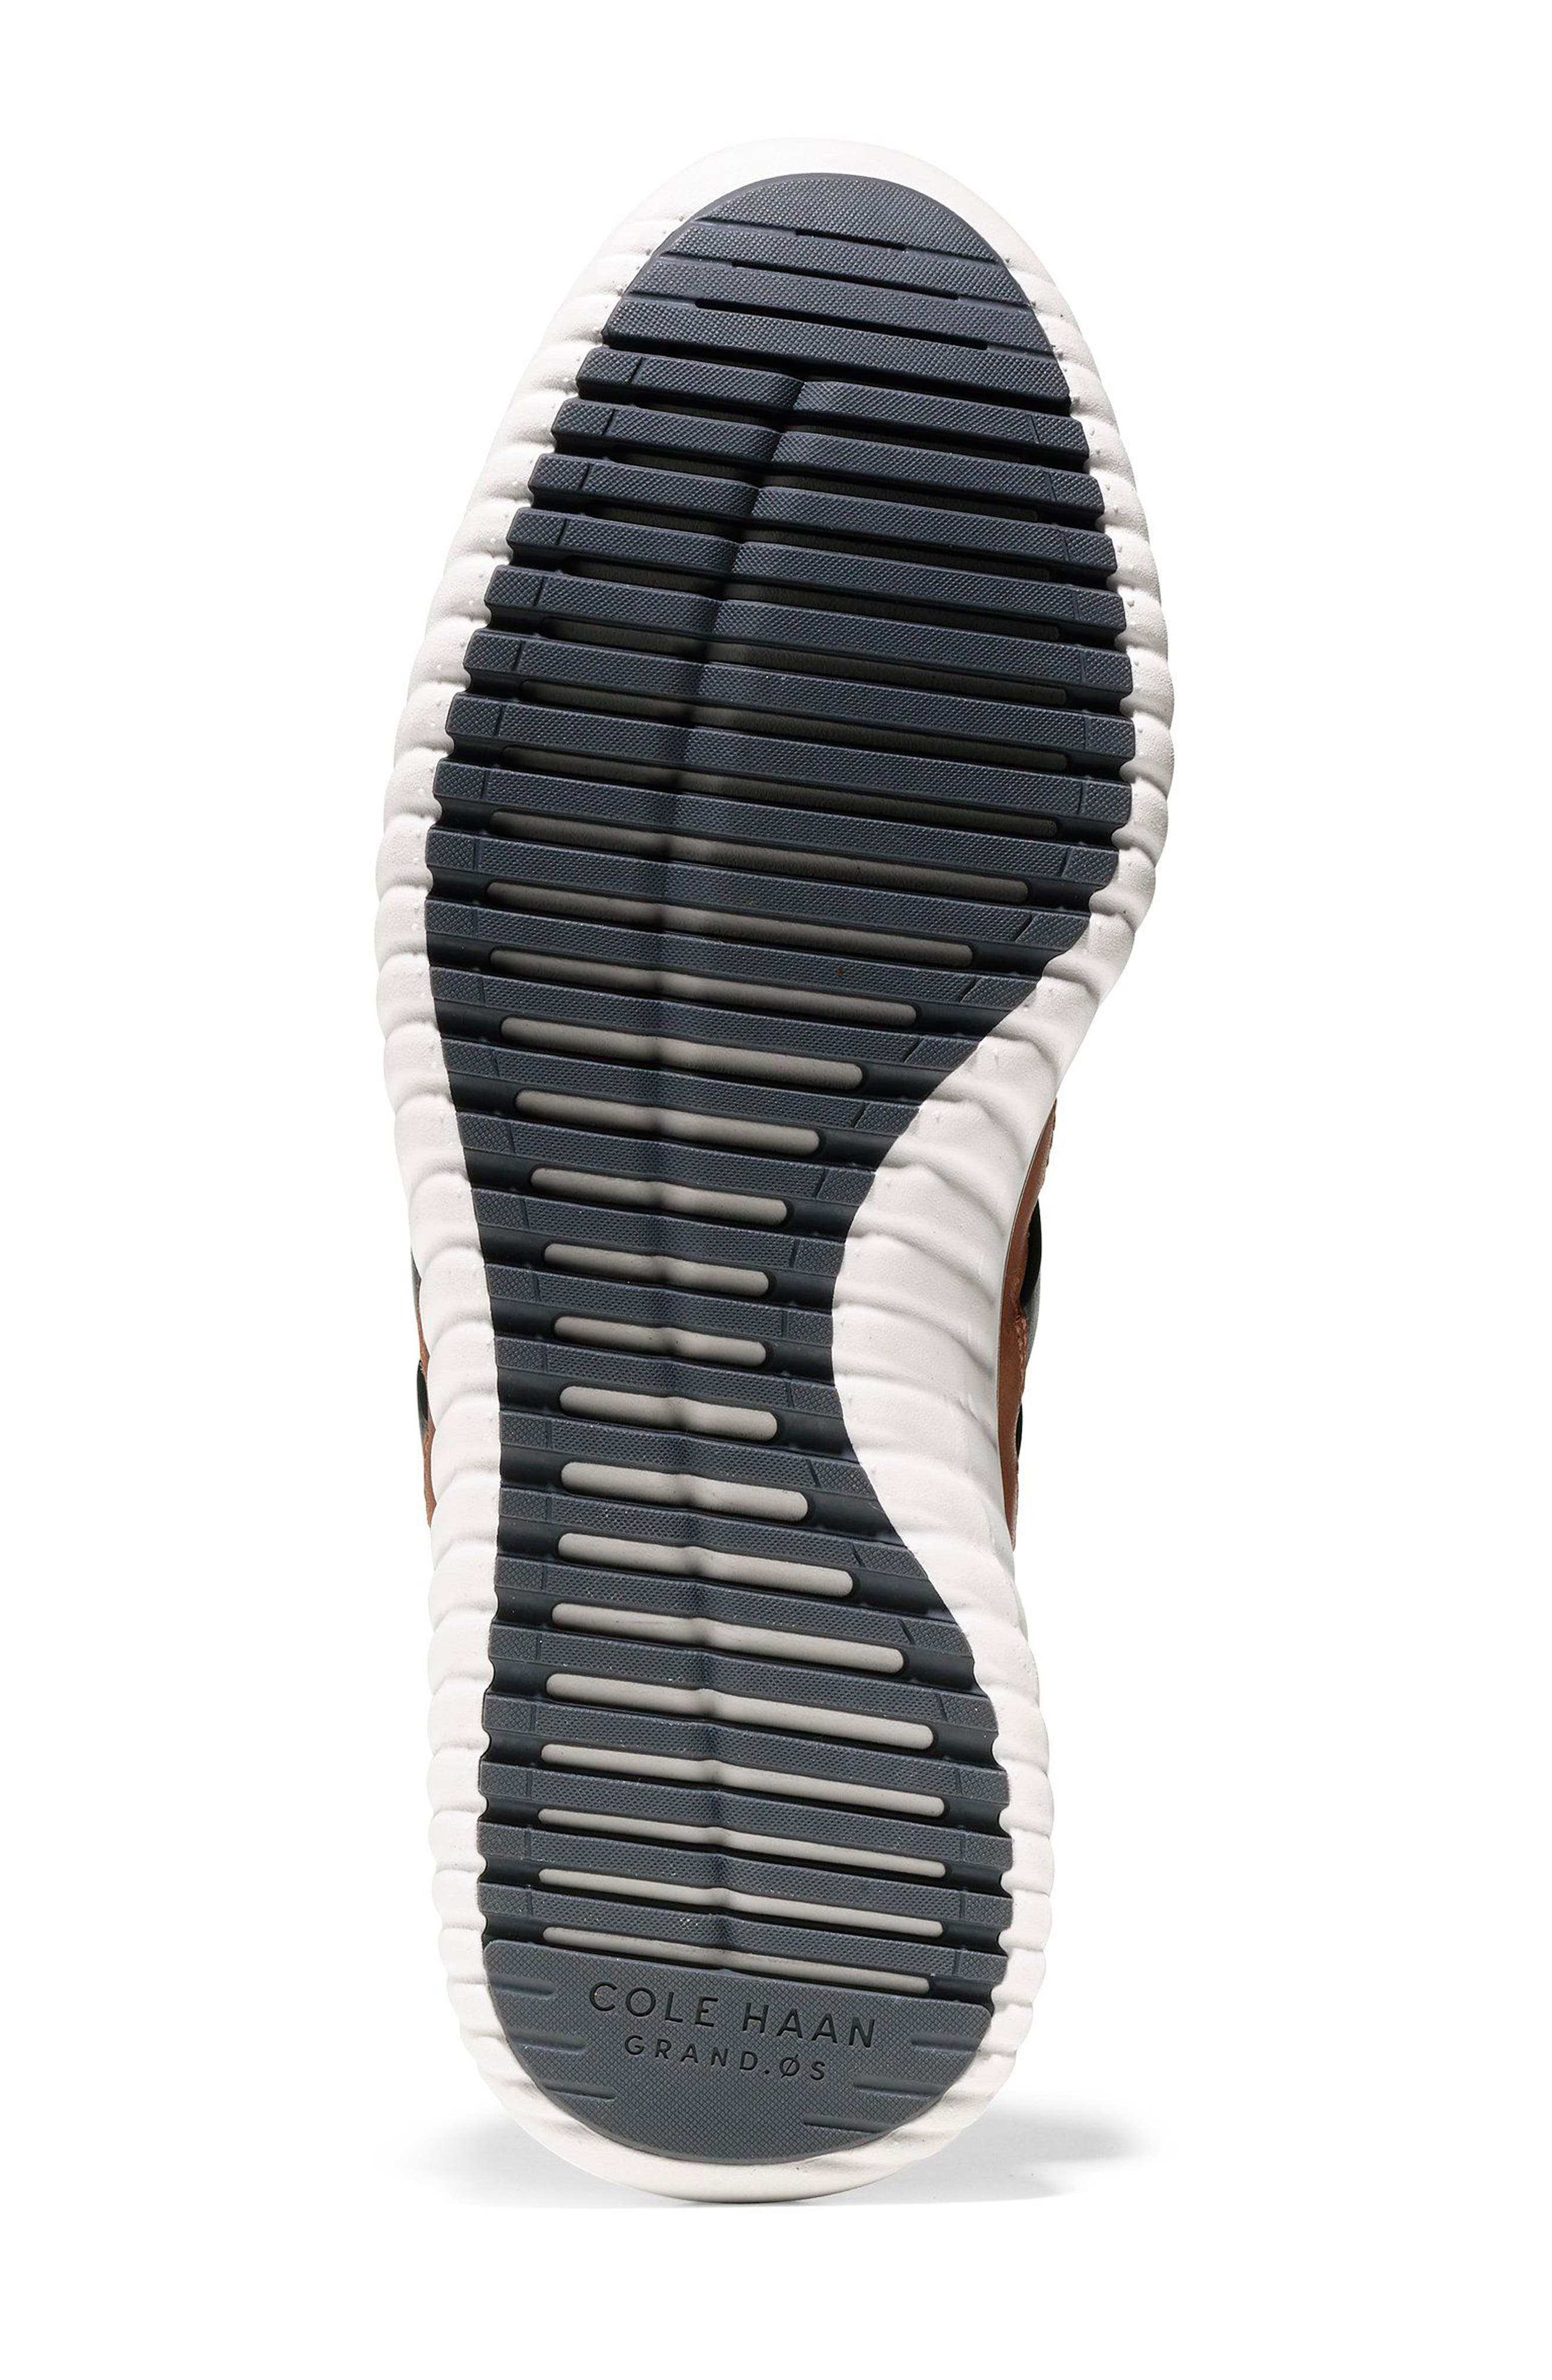 COLE HAAN,                             Grand Motion Sneaker,                             Alternate thumbnail 6, color,                             020